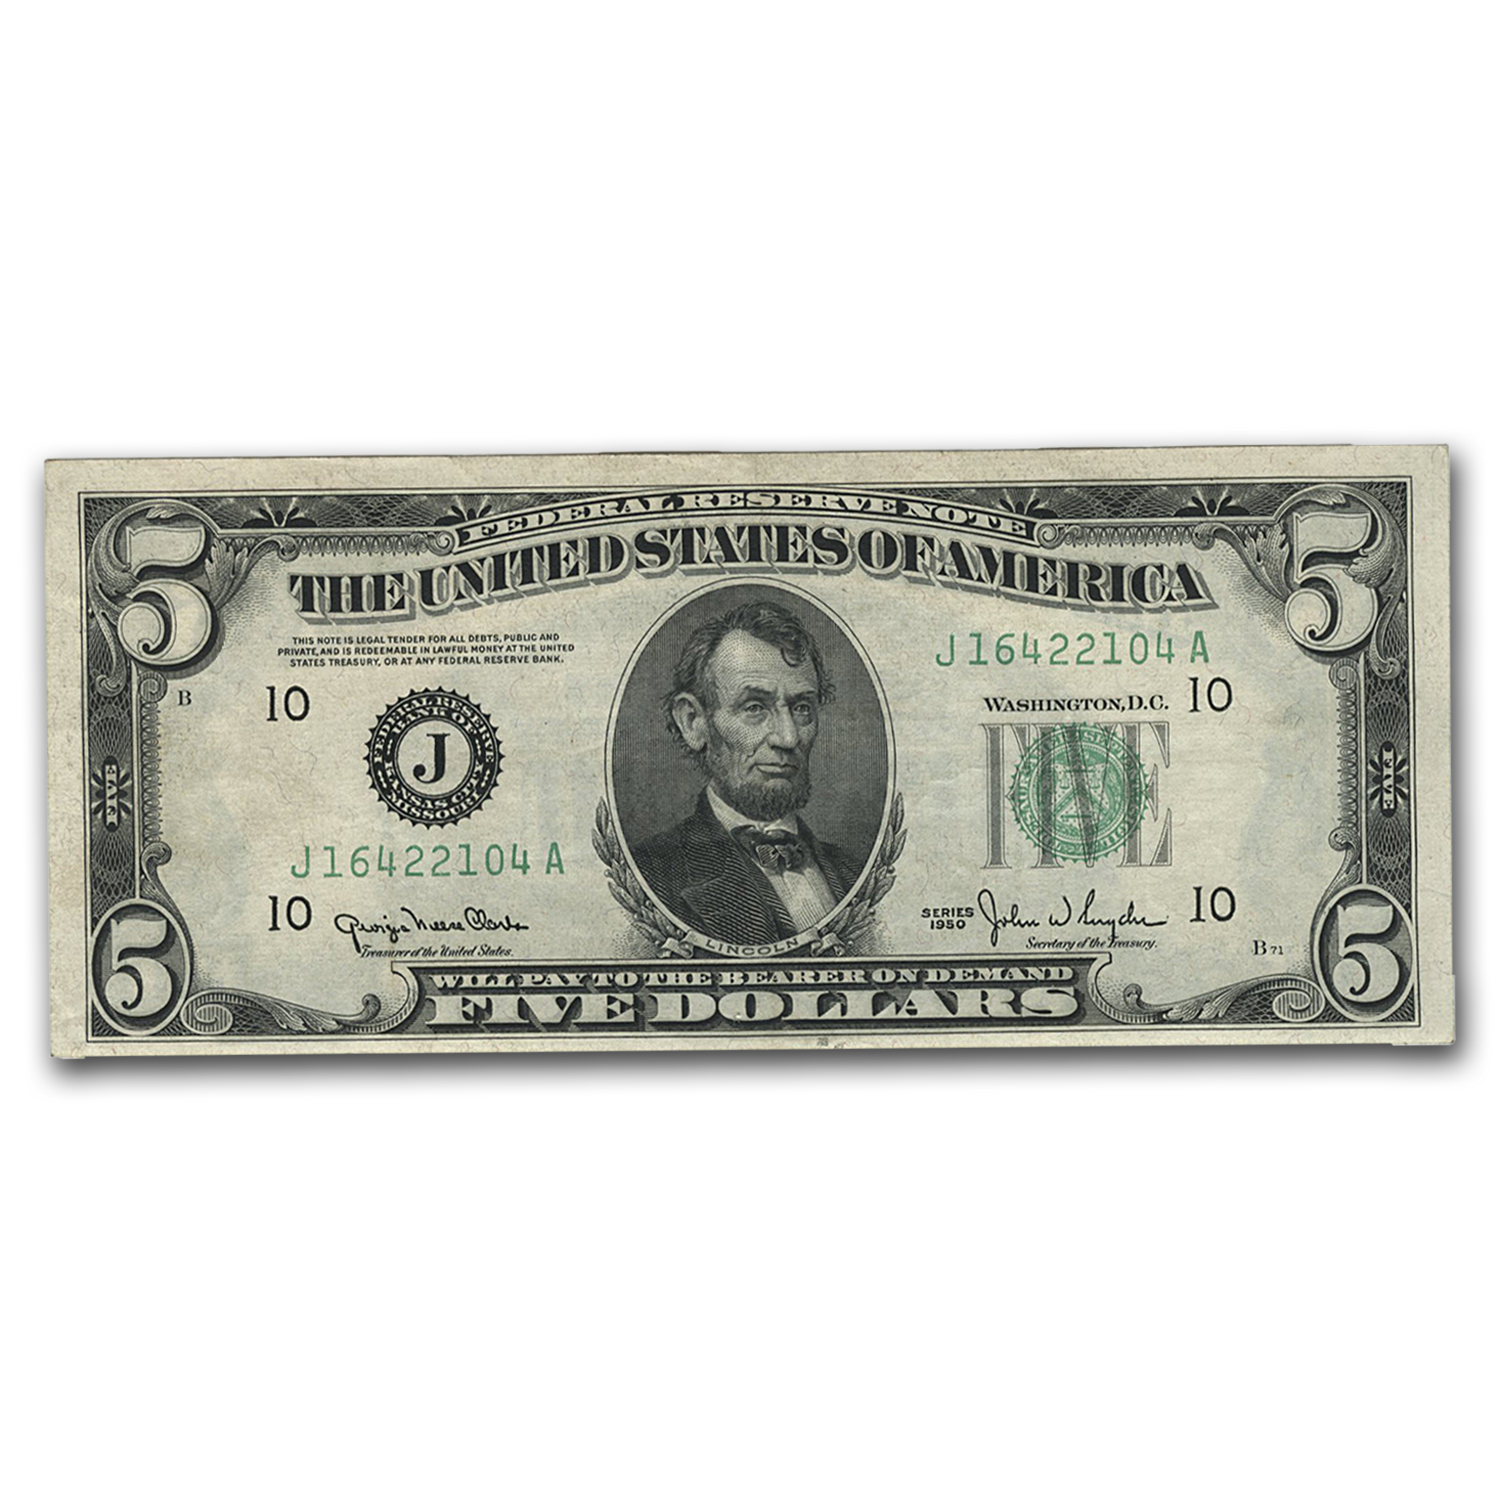 1950 (J-Kansas City) $5.00 FRN CU (Wide Seal)